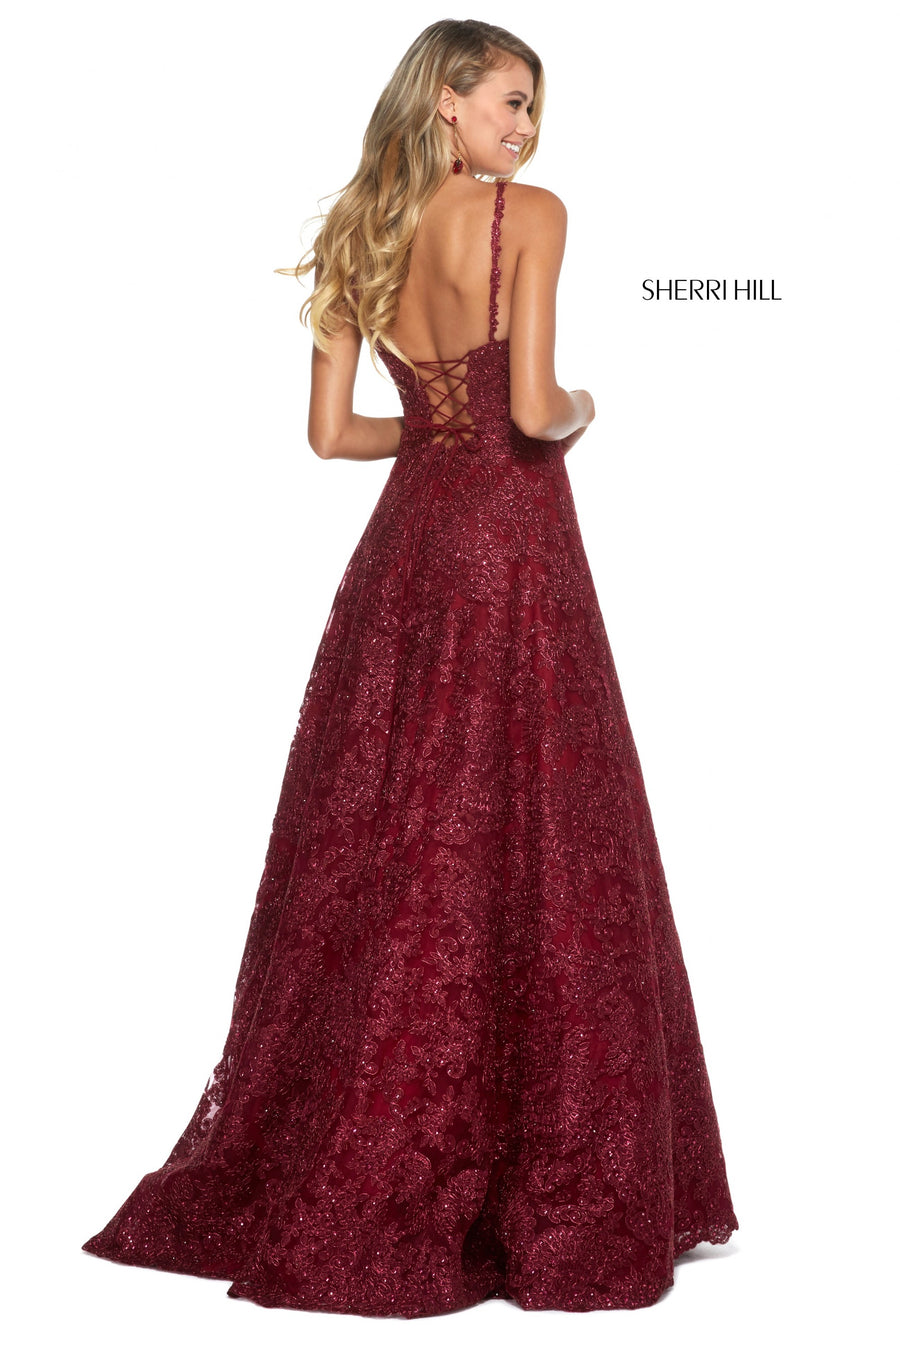 Sherri Hill 53250 prom dress images.  Sherri Hill 53250 is available in these colors: Black; Burgundy; Light Blue; Ivory; Rose Gold; Gold.